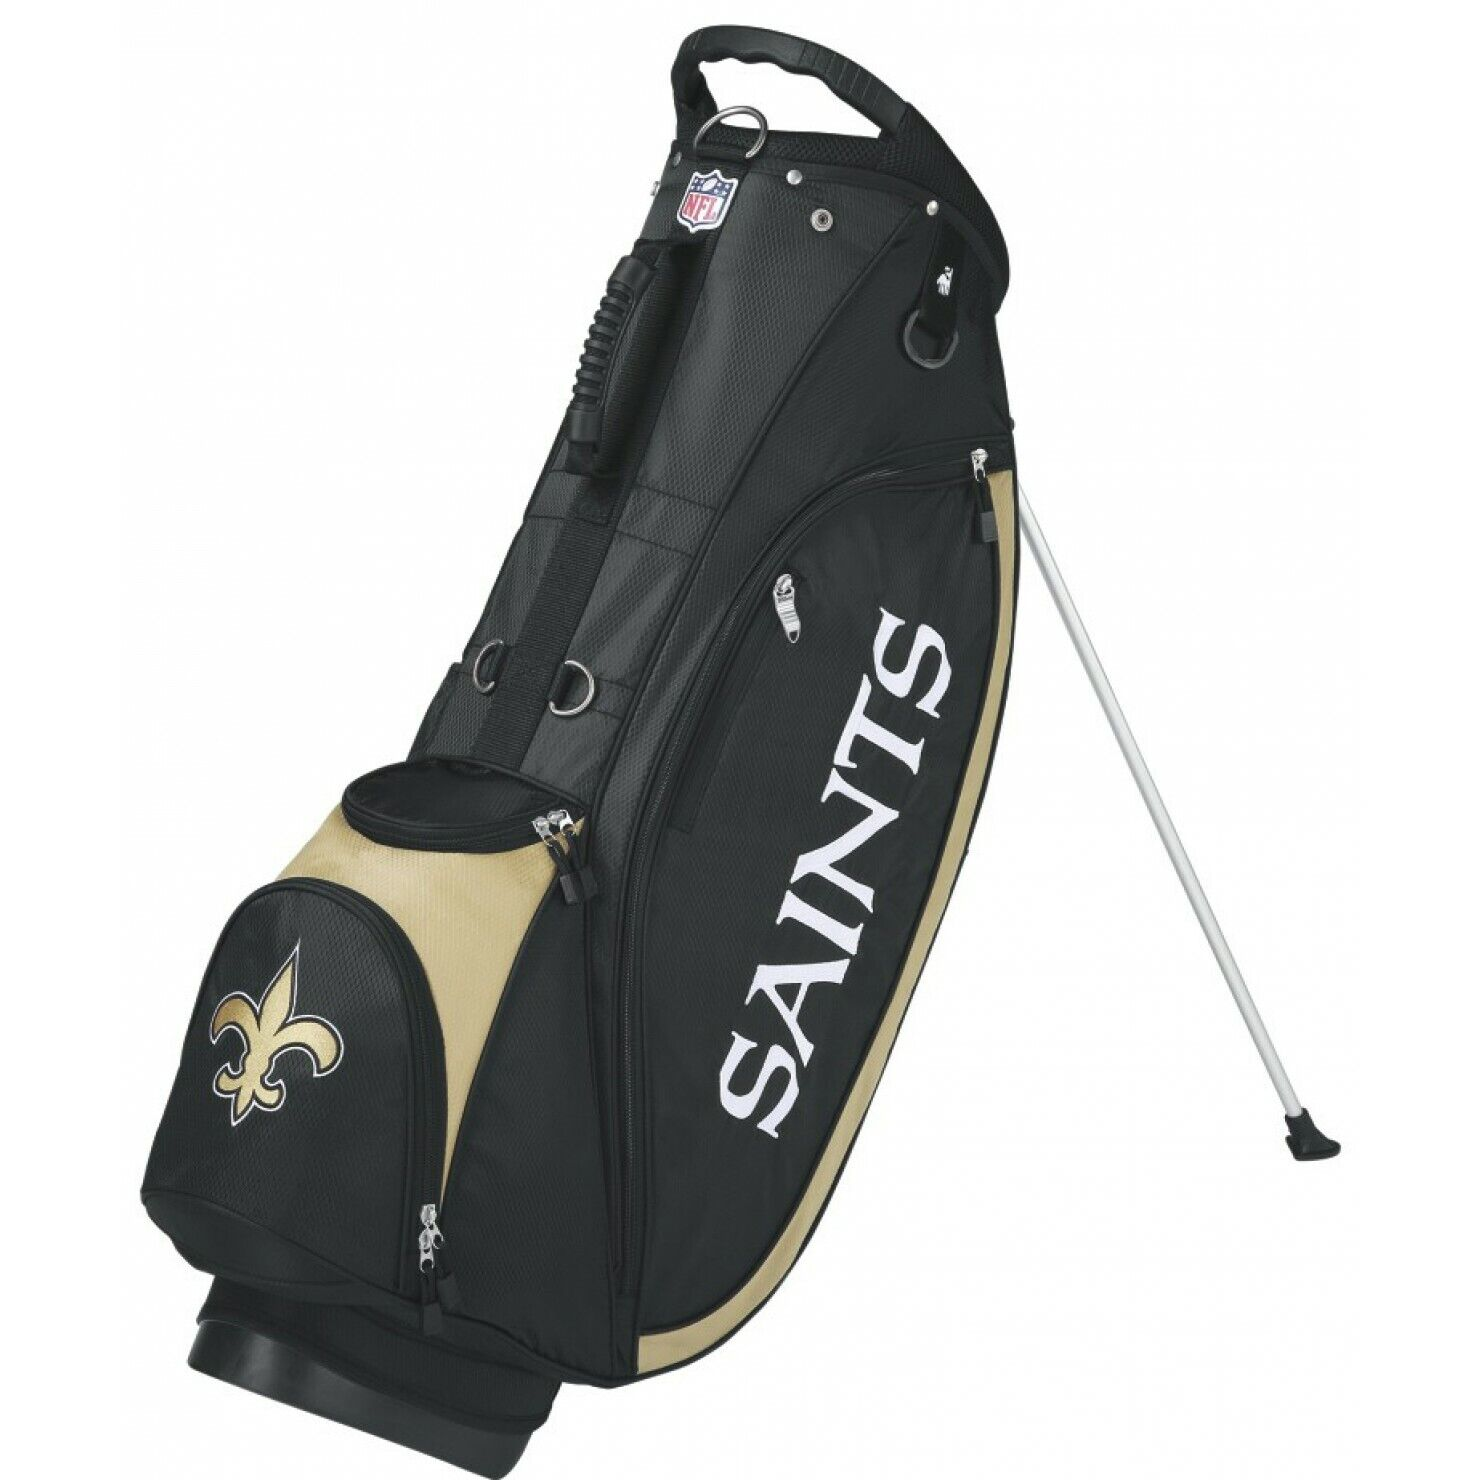 52191001 NEW Wilson Staff NFL Golf Stand Bag w/ 5 Way Top - Choose Your Favorite  Team!!